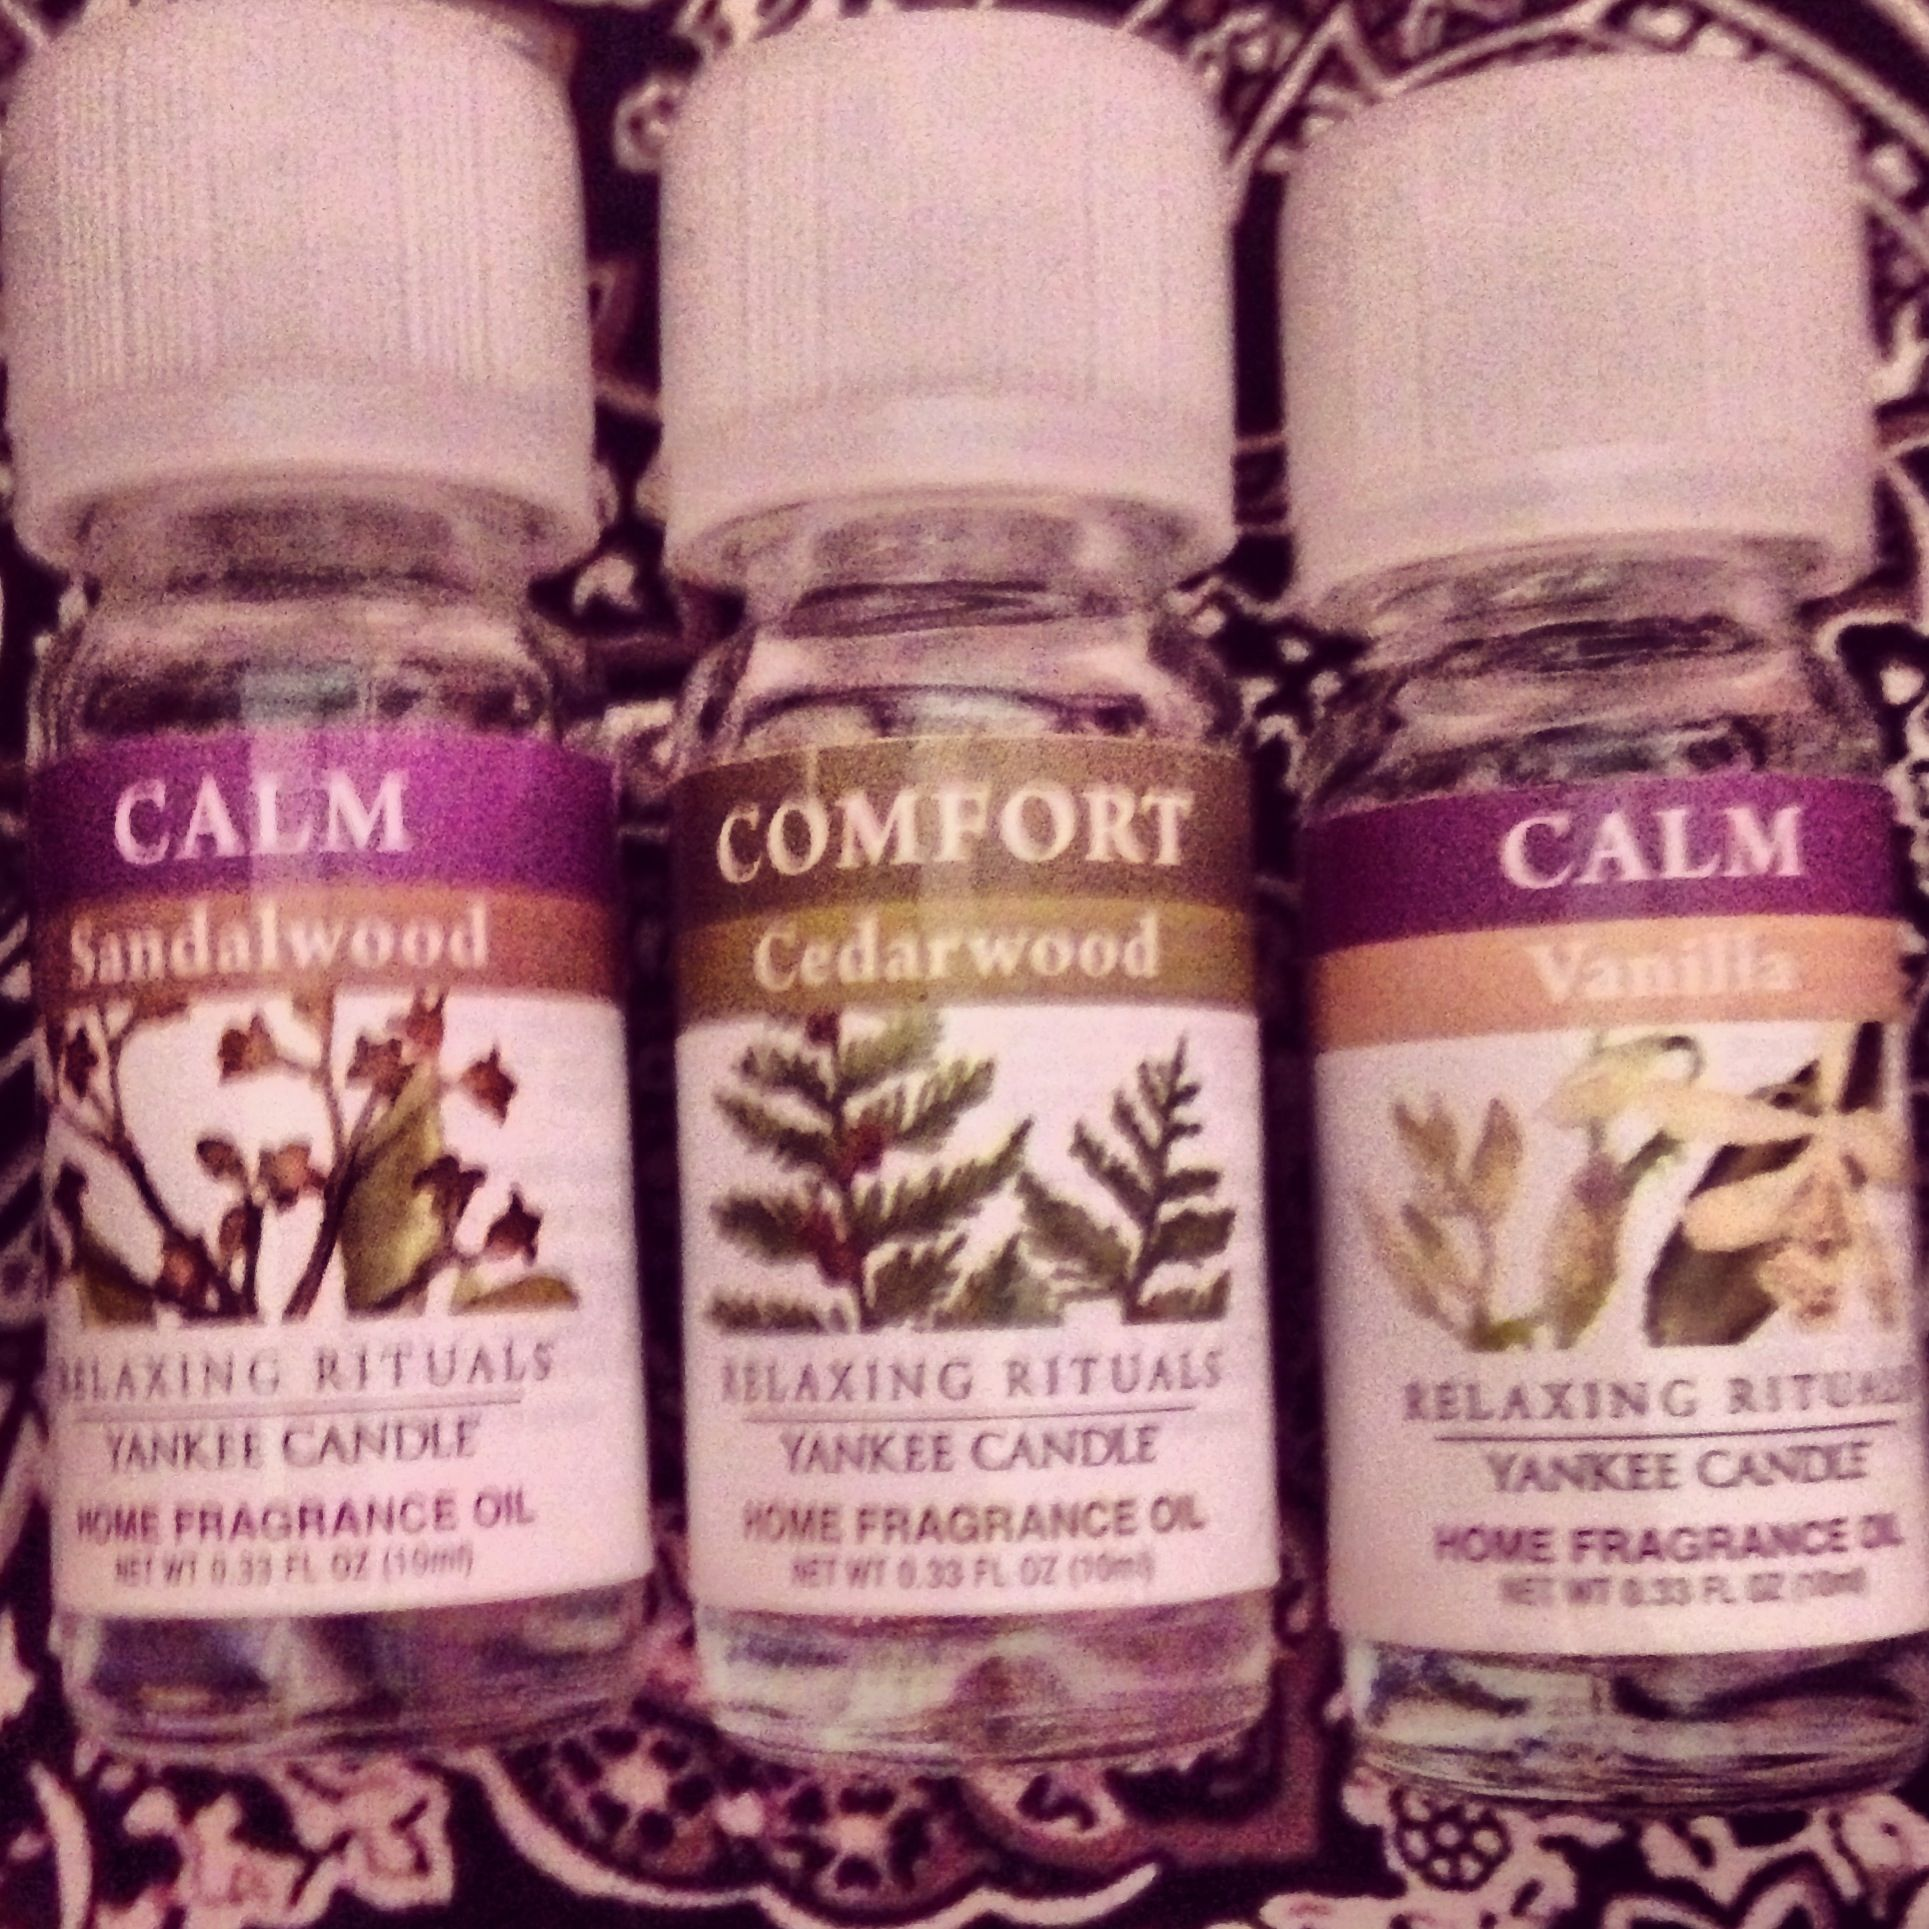 Use drops of each of these oils in an oil burner using a tea